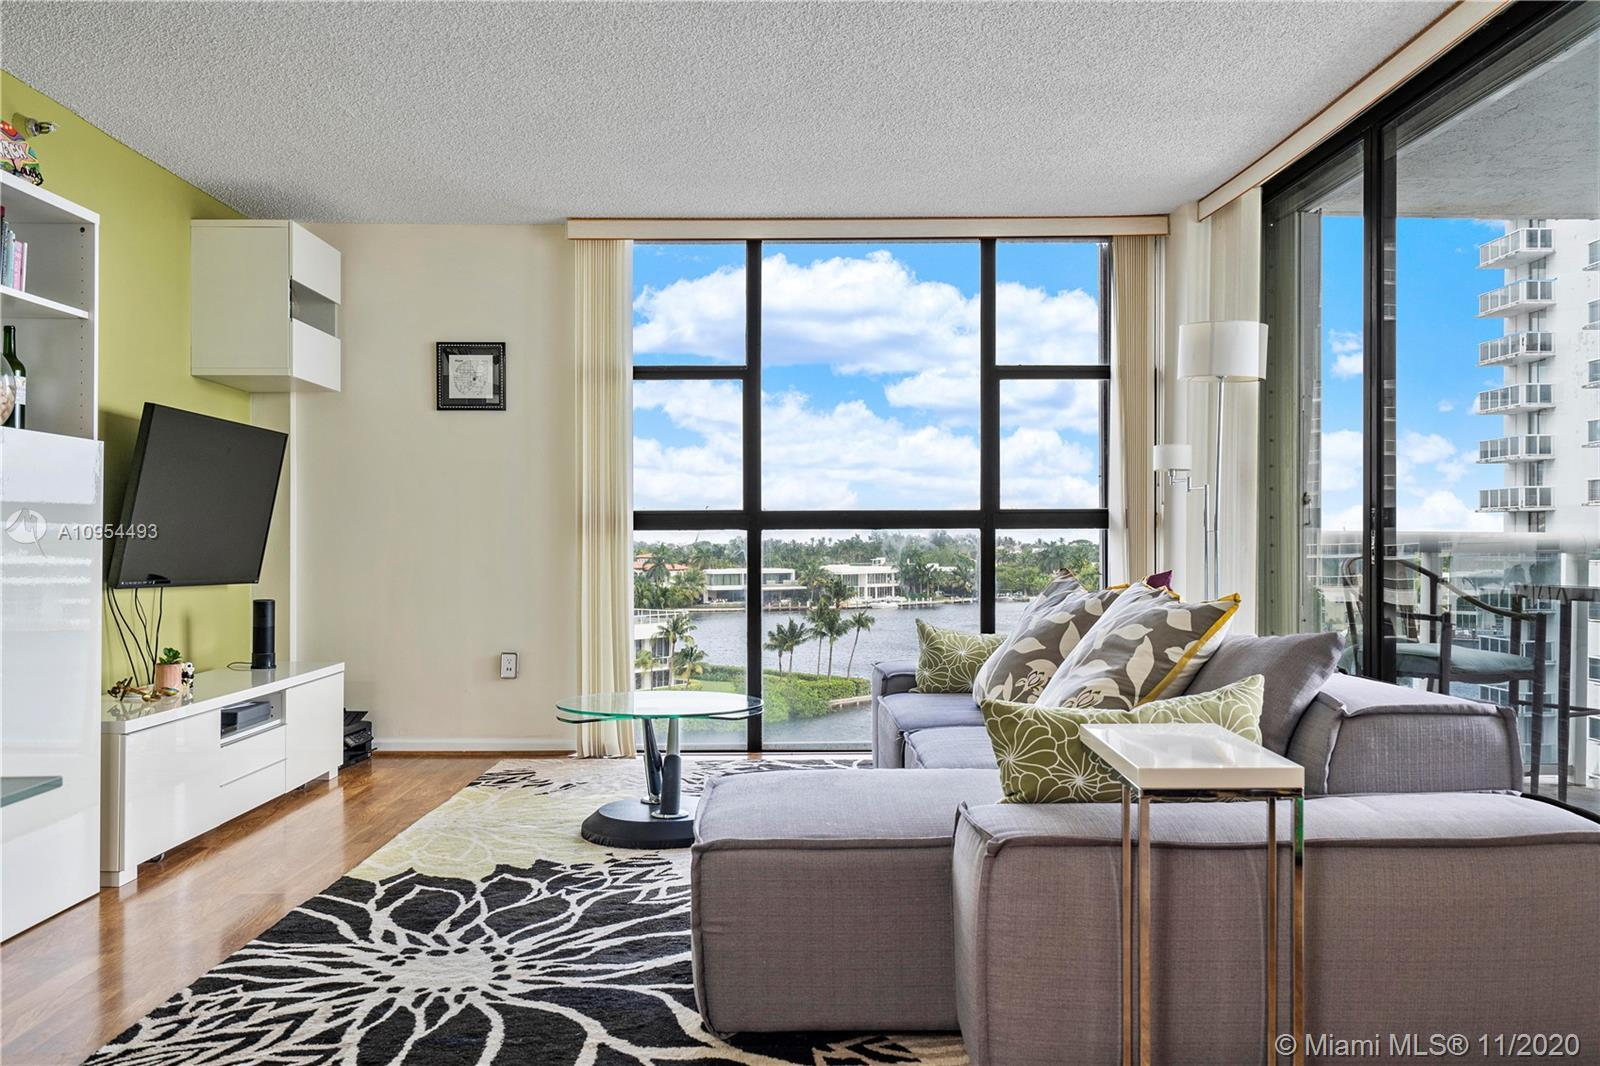 Breath taking views from every room in this spectacular 2B/2B corner unit in the desirable Waterview